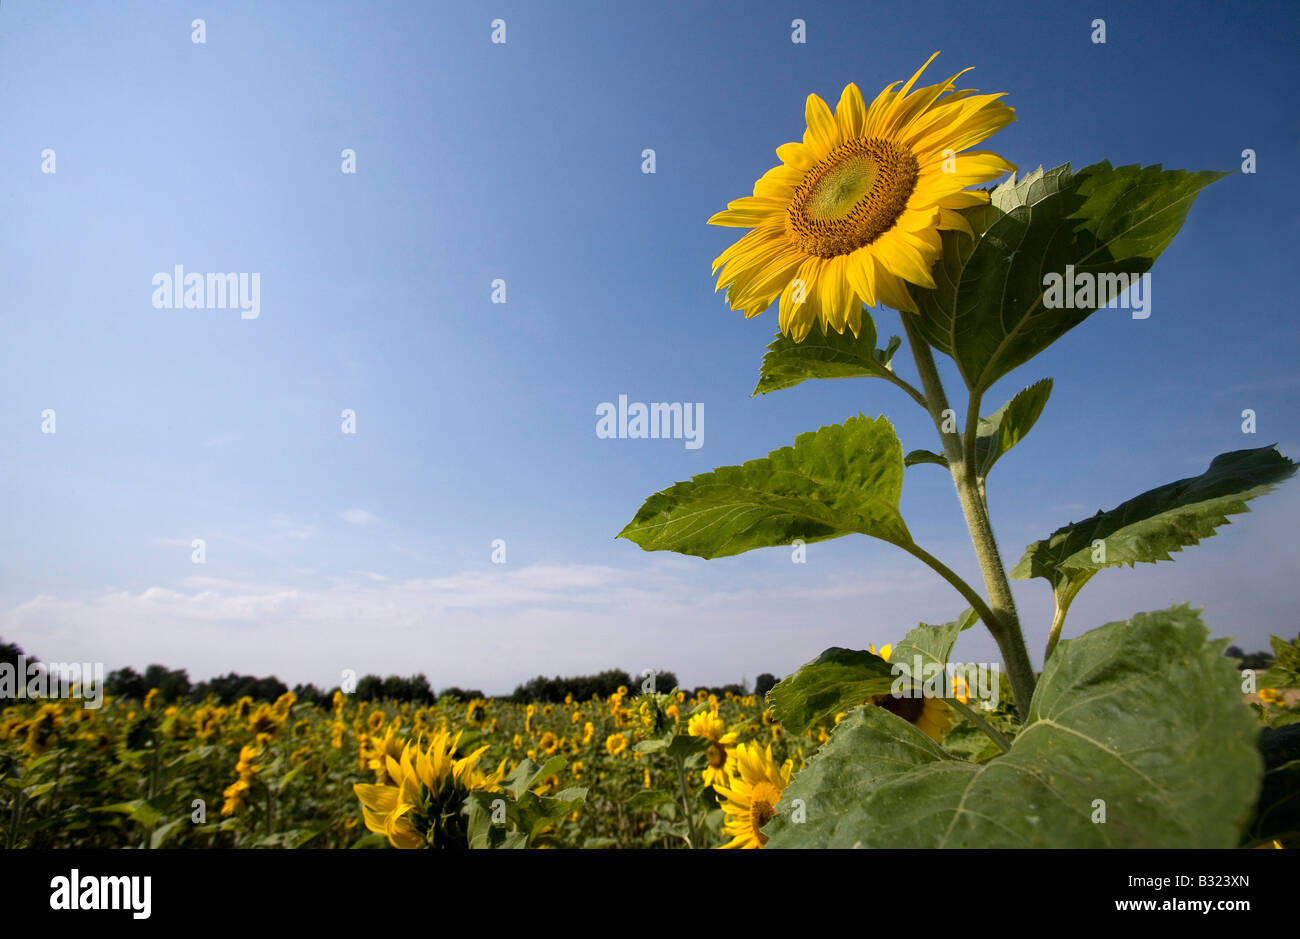 Field with sunflowers - Stock Image